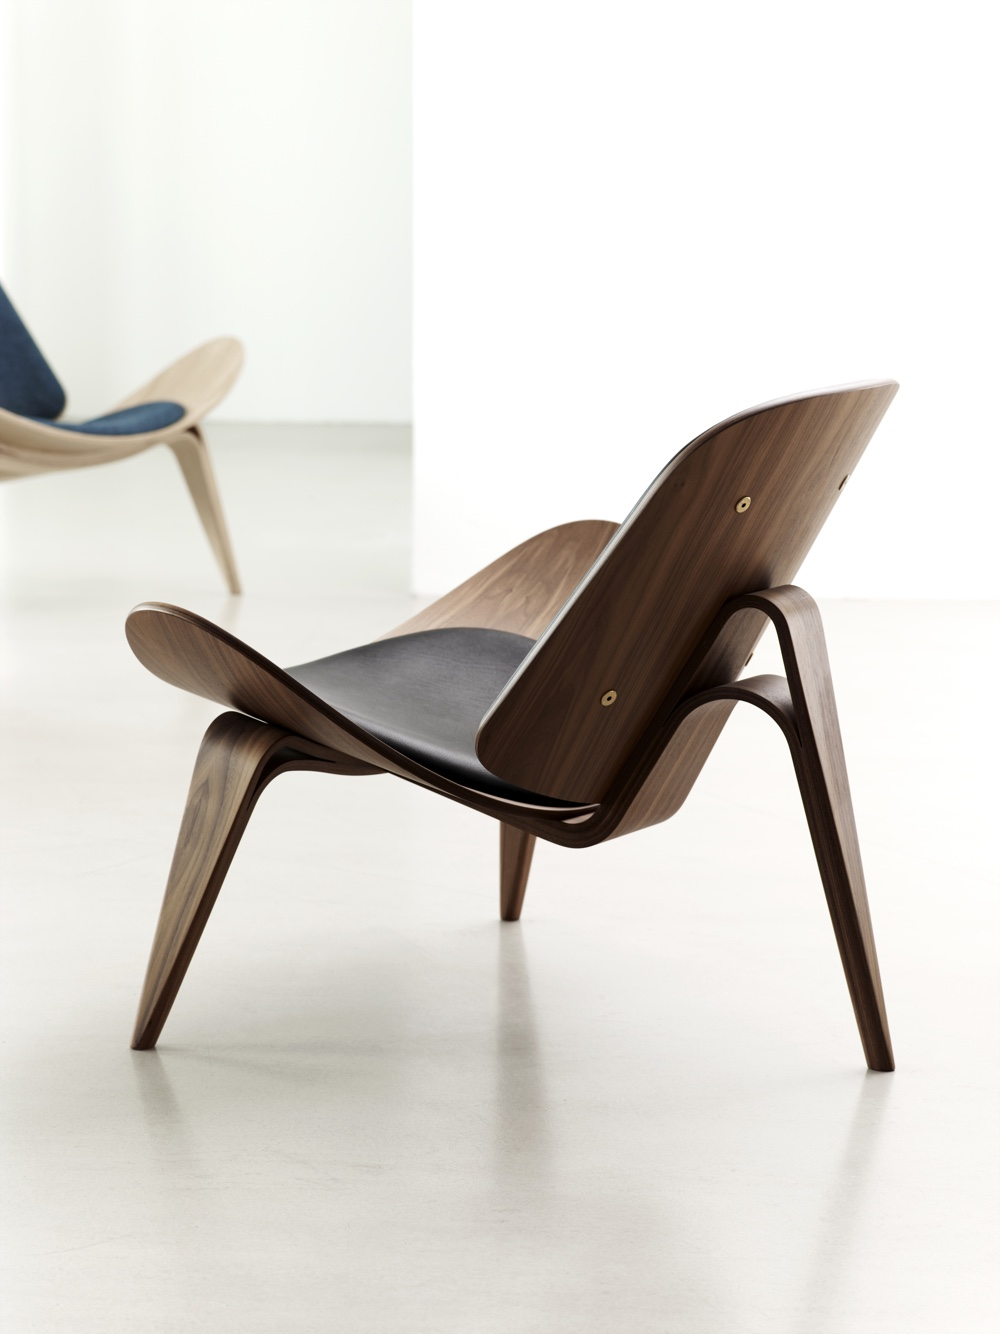 CH07 Shell Chair. Image courtesy of Carl Hansen & Søn.